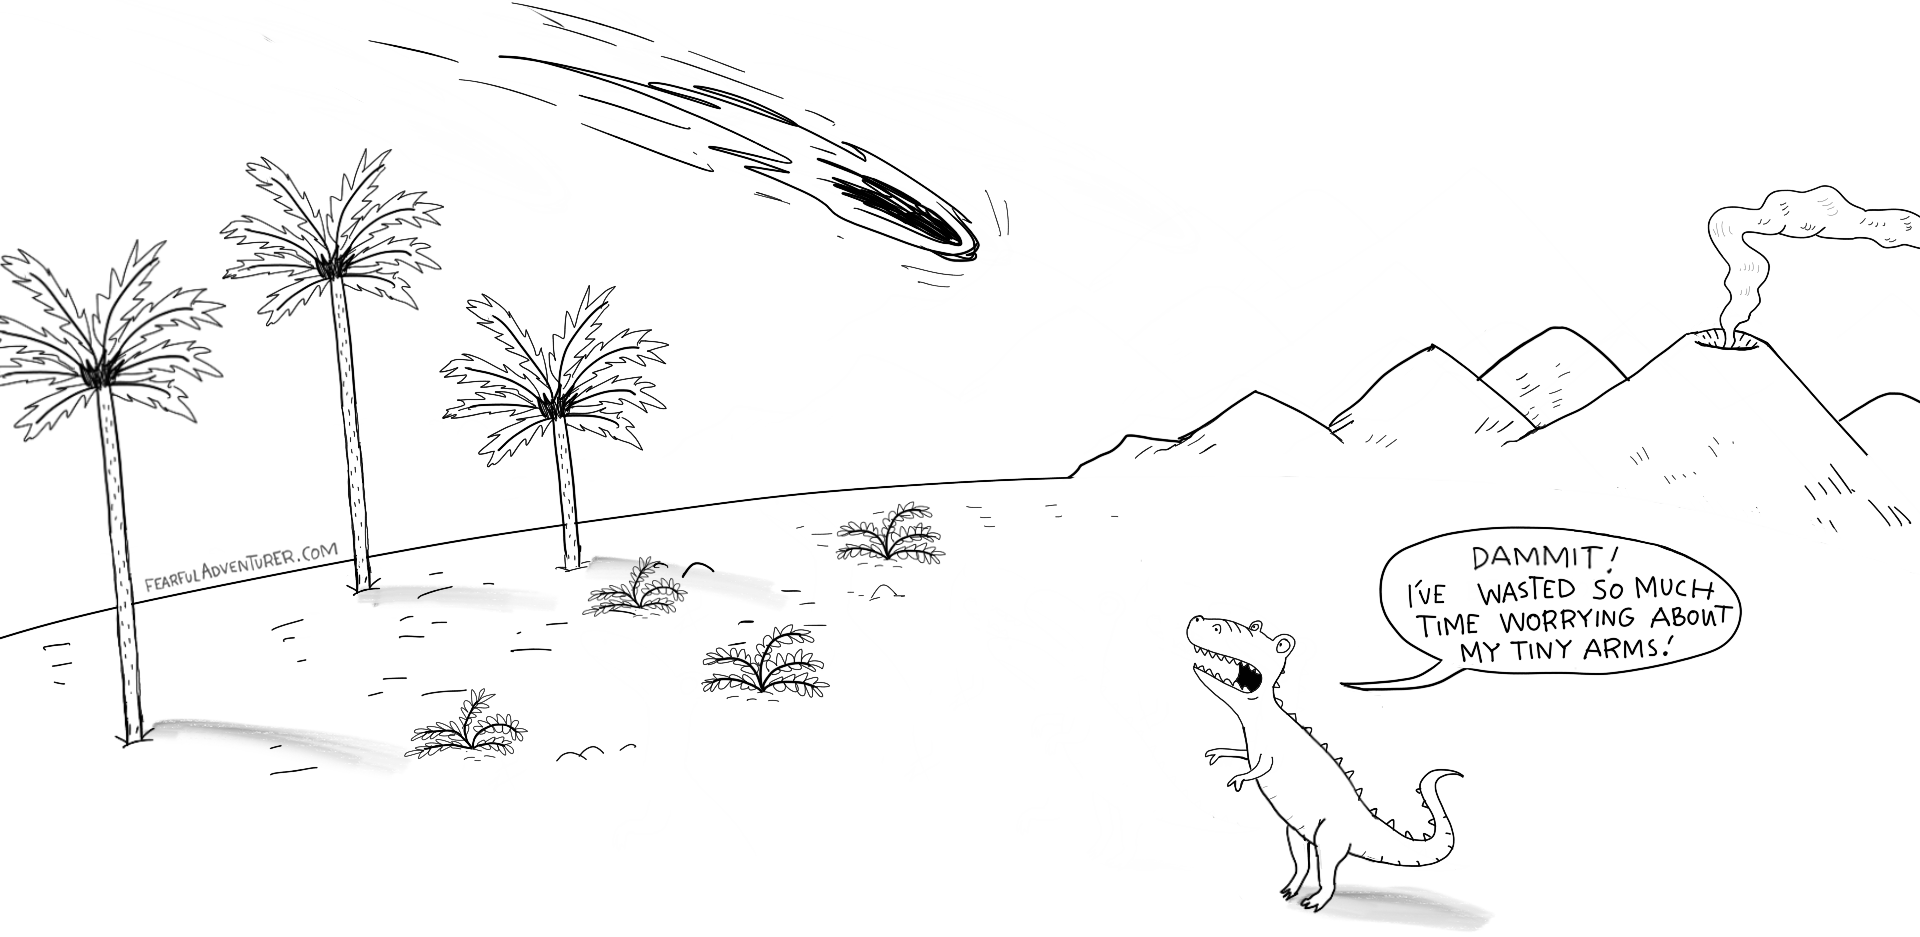 End of dinosaurs